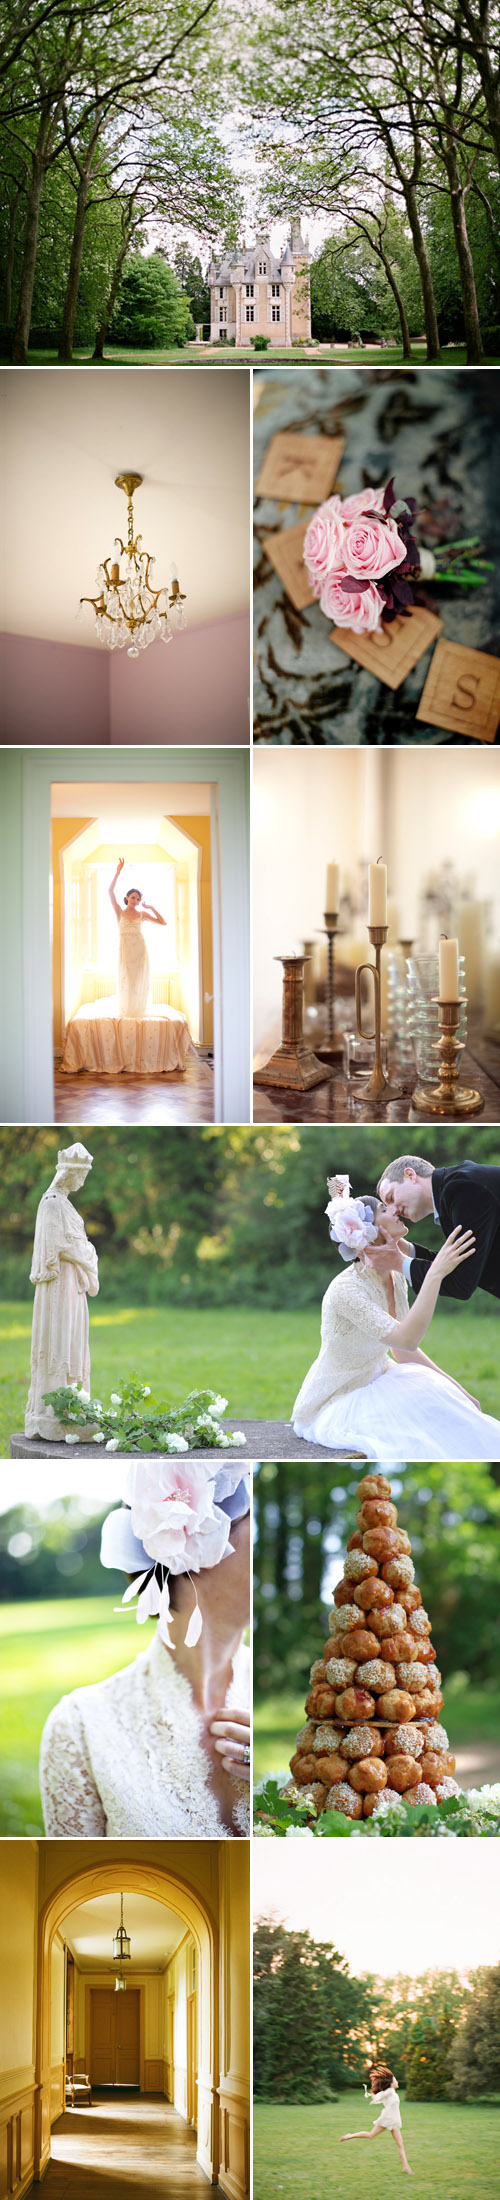 inspirational wedding photos from Elizabeth Messina's A Lovely Workshop